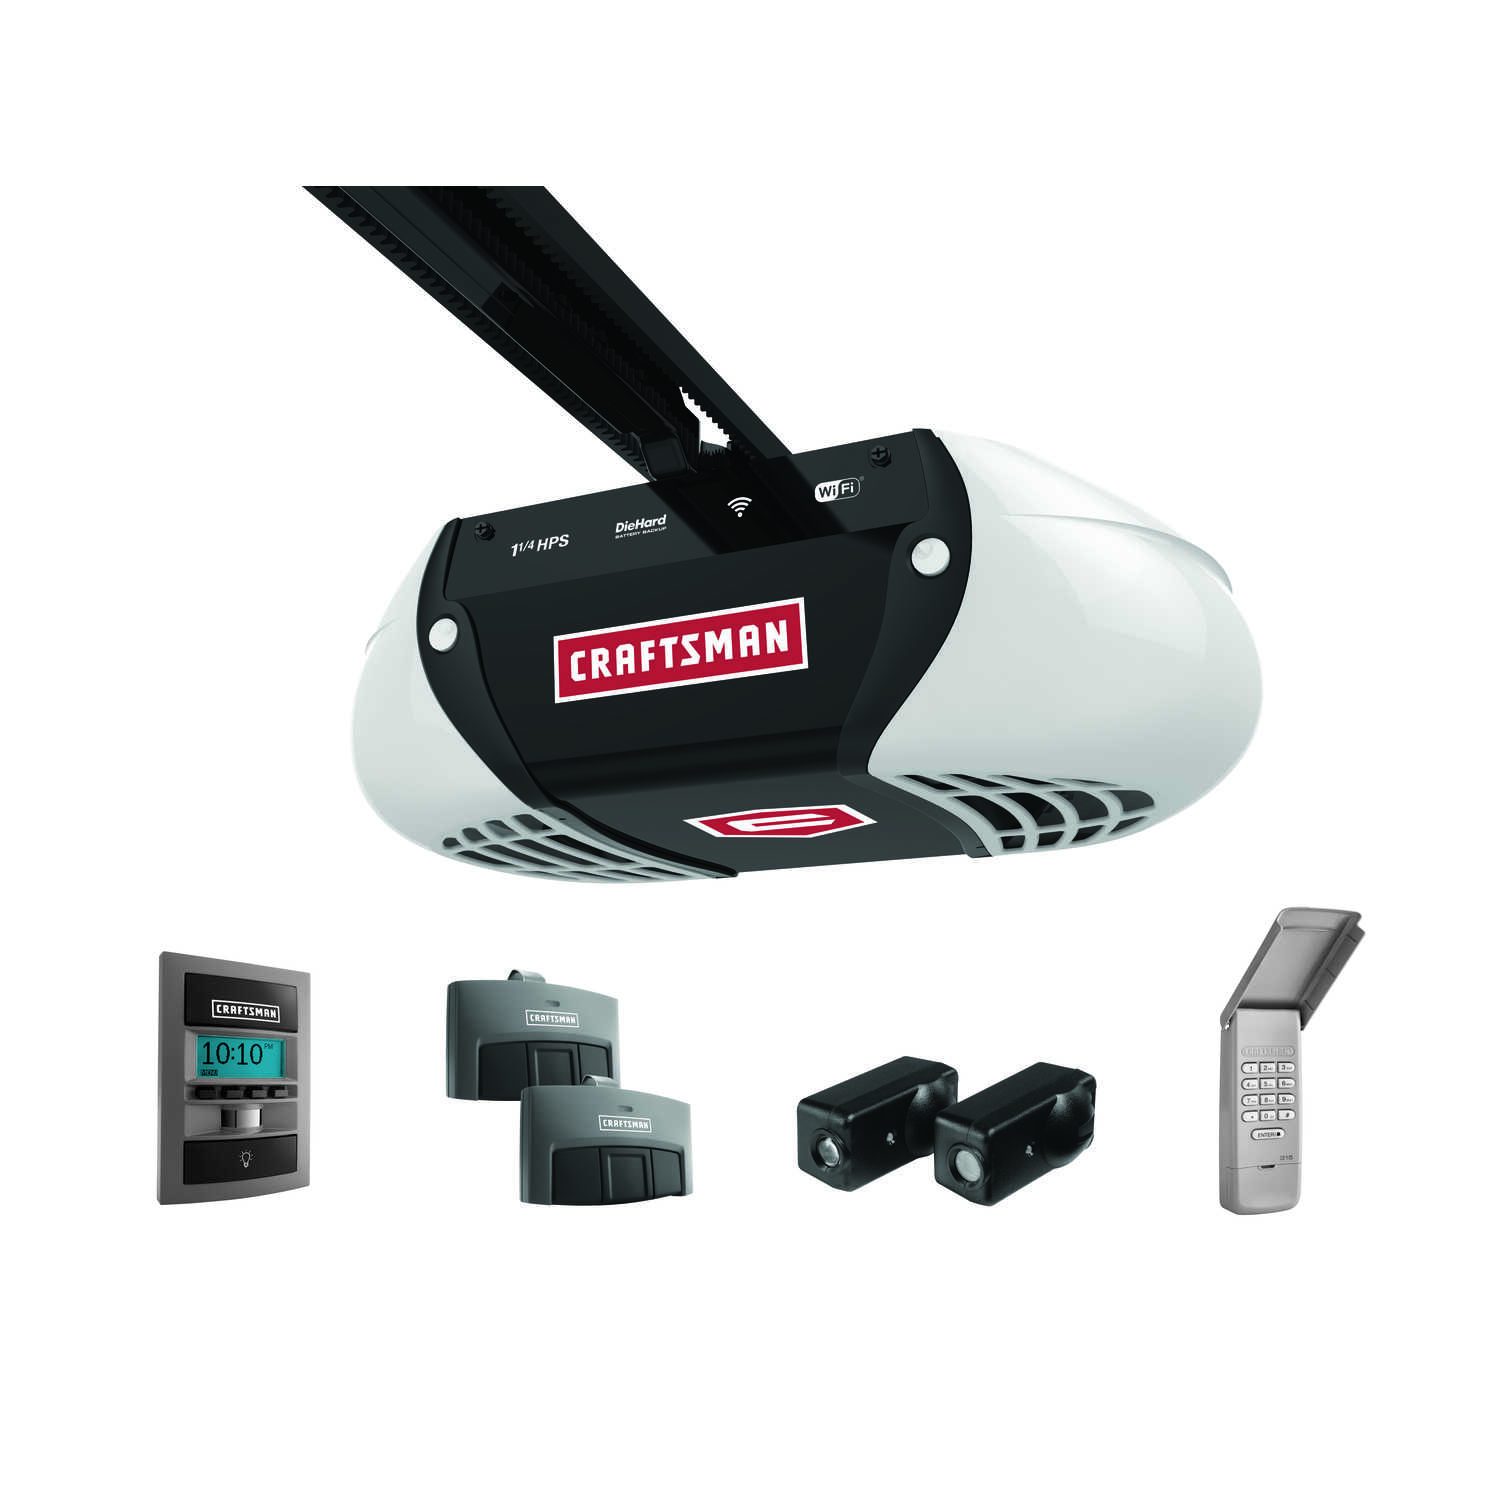 Craftsman  WiFi  1-1/4 hp Belt Drive  Garage Door Opener